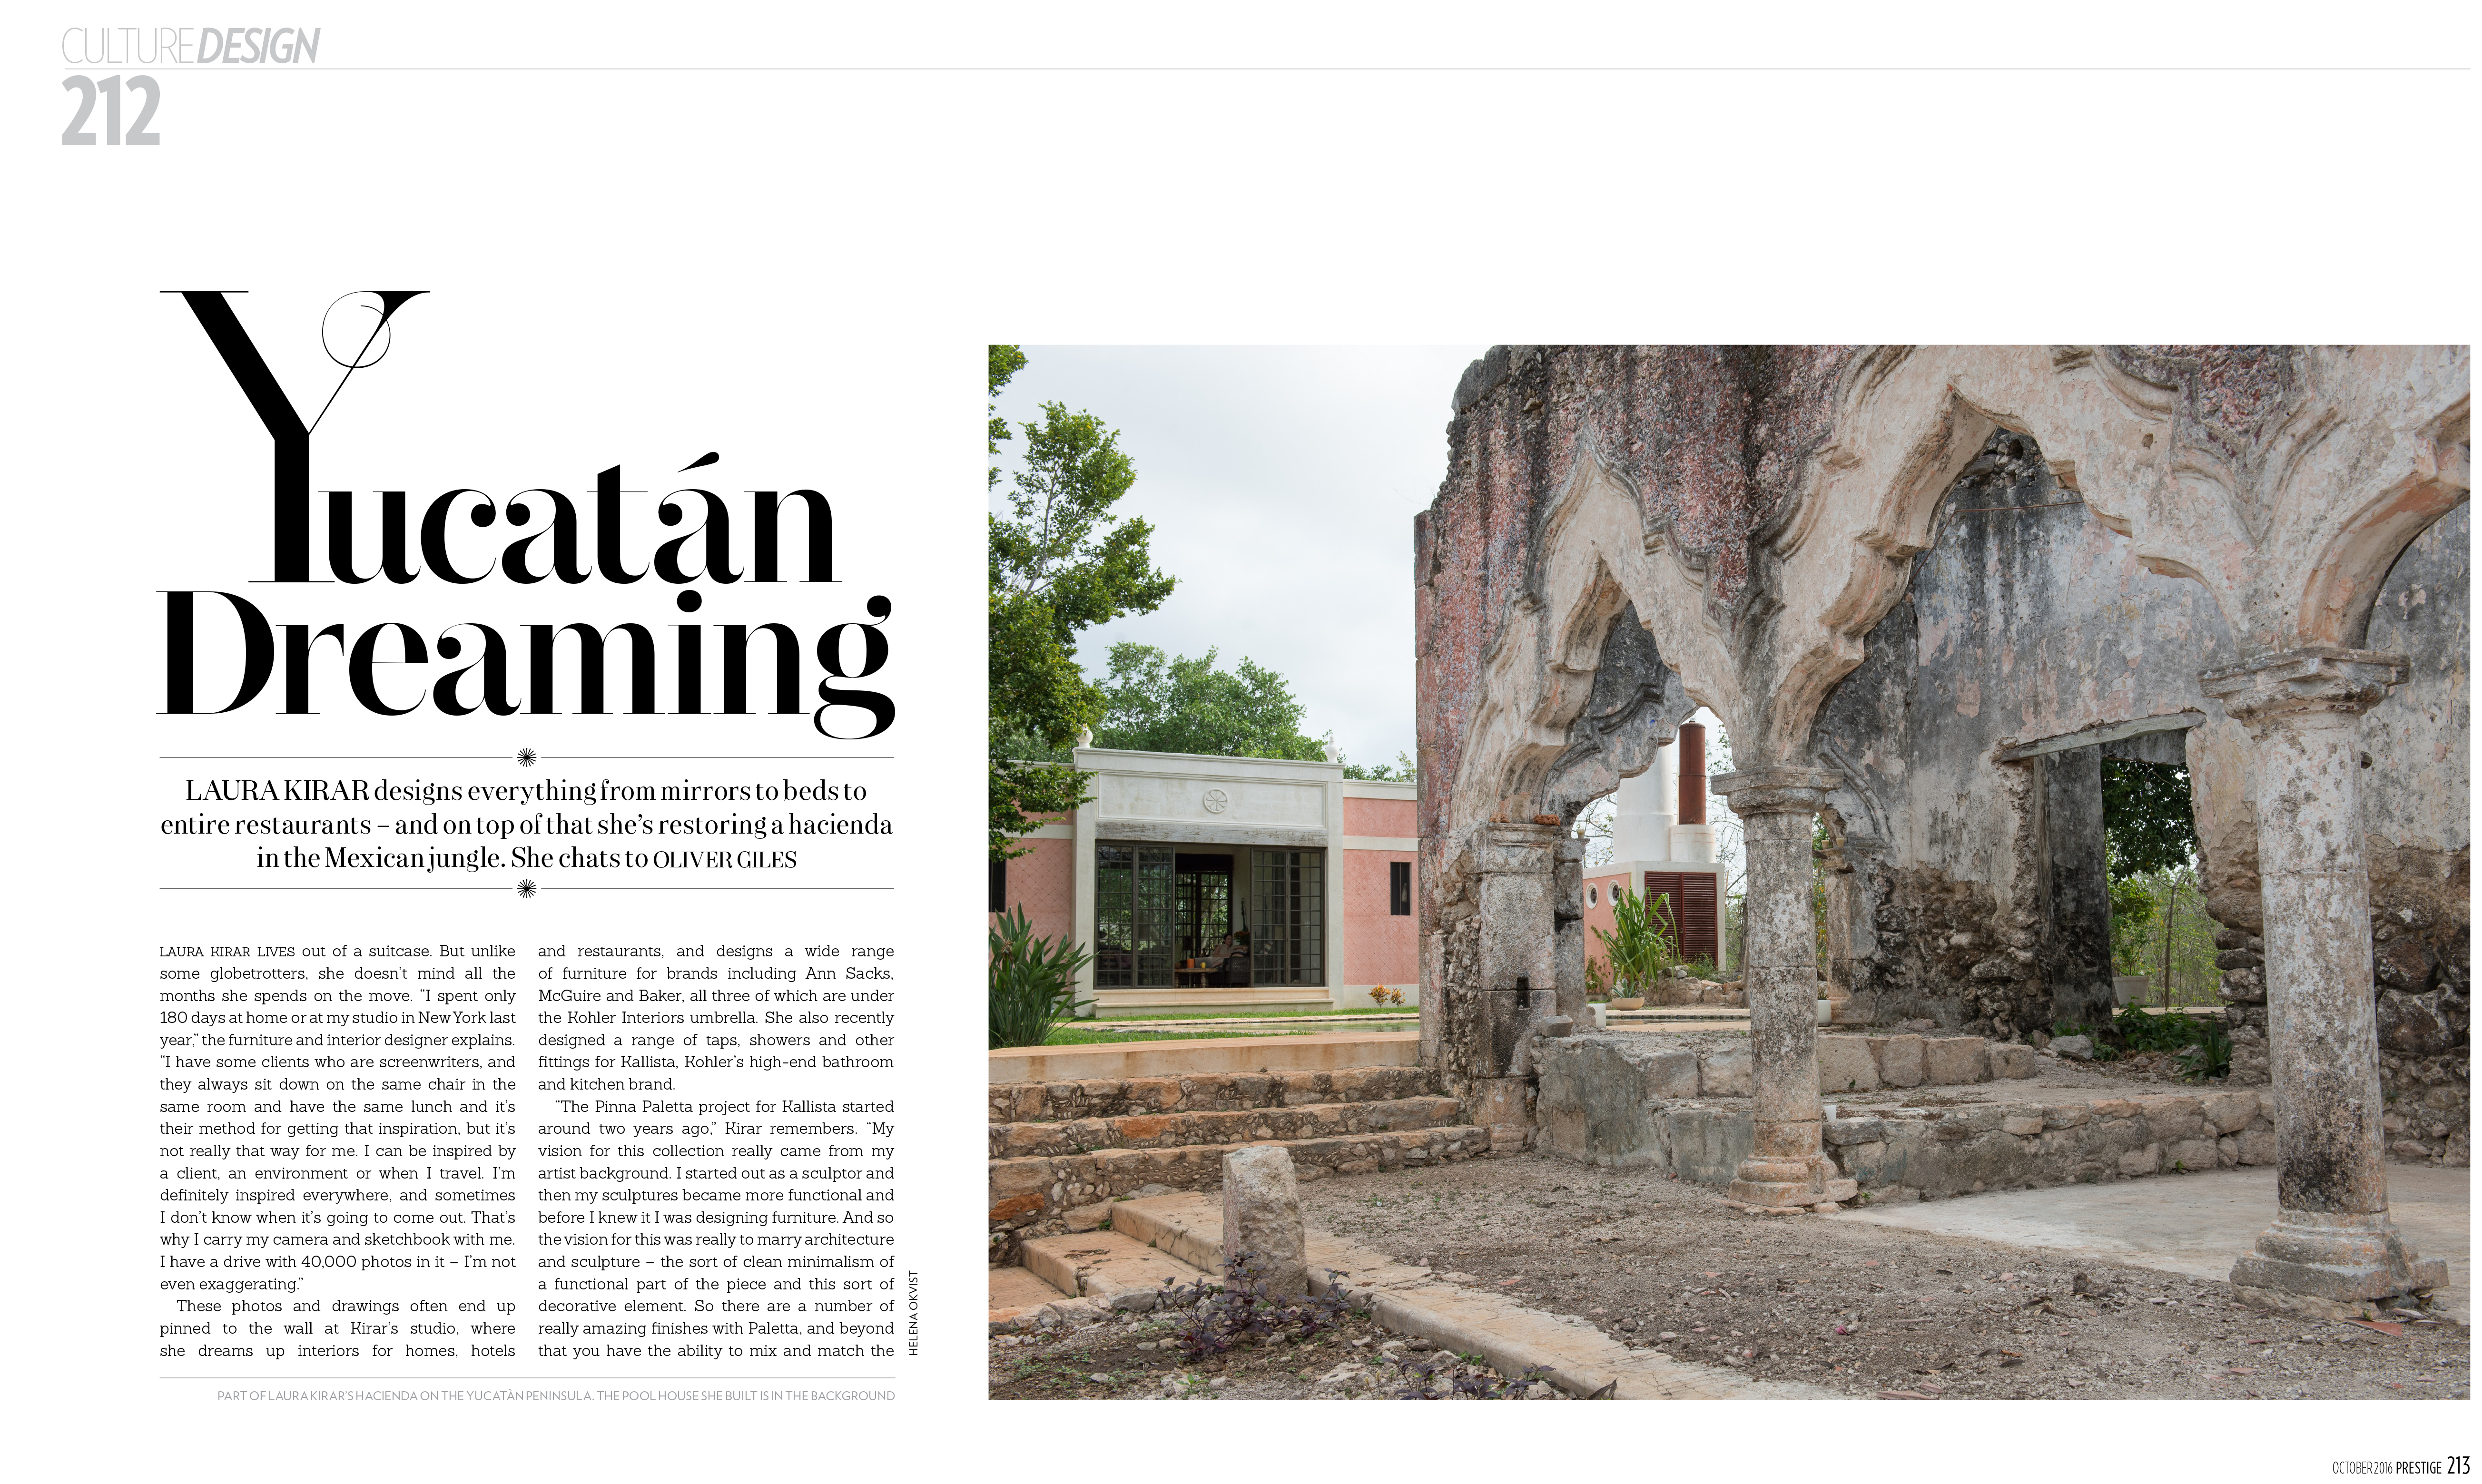 yucatan, dreaming, laura kirar, design, mexico, travel, inspiration, hacienda, kallista, prestige, hong kong, magazine